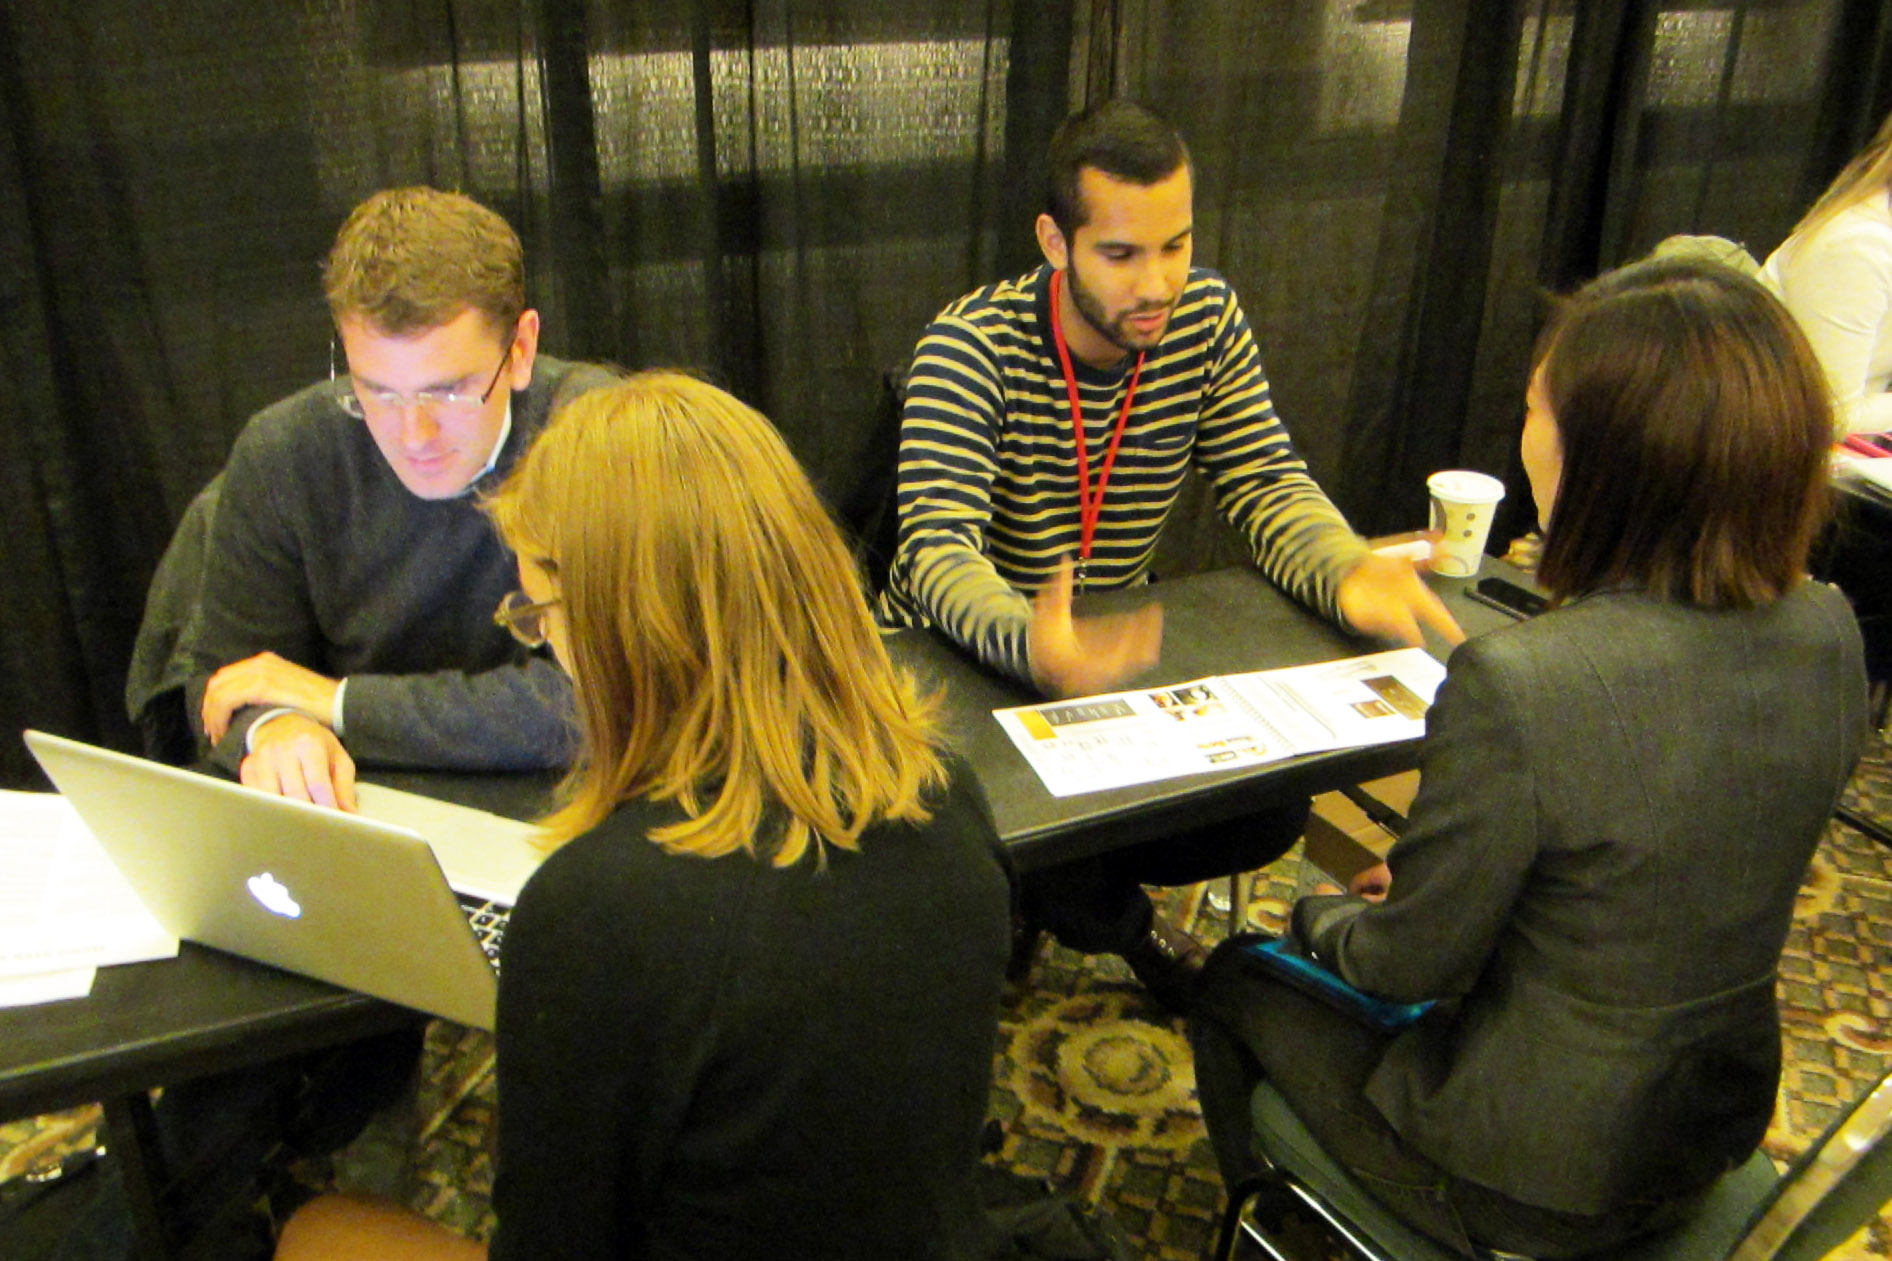 A photo of four people seated at a table looking at a computer and papers